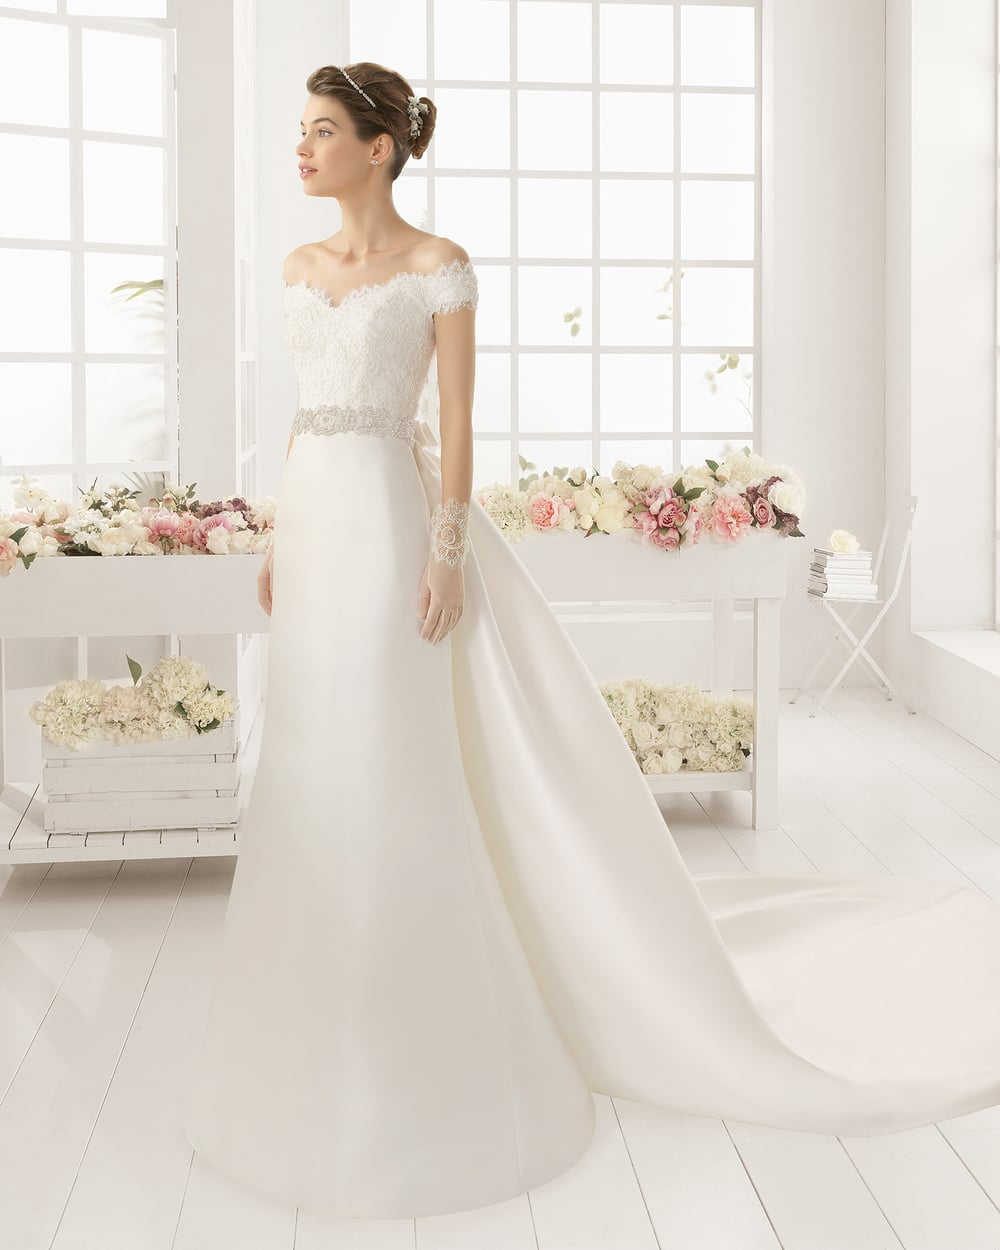 The Argelia gown from Aire Barcelona has a definite look of Elsa about it.